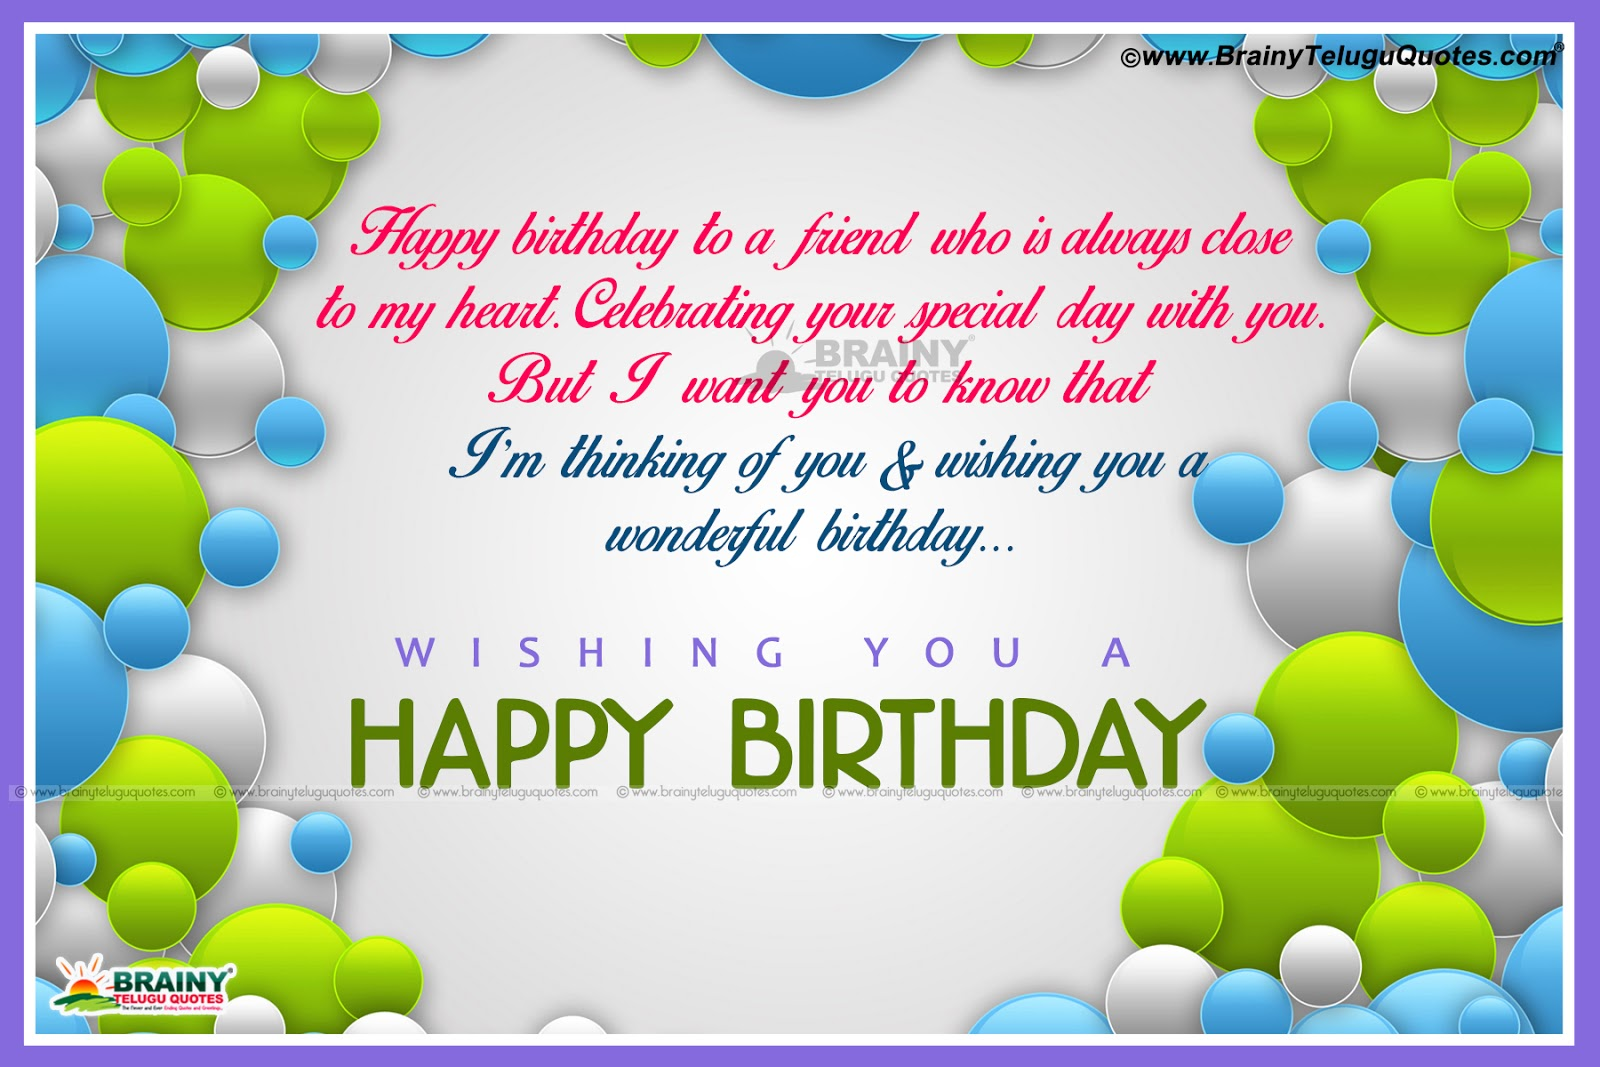 Brainy Birthday Quotes For Best Friend : Friend birthday quotes and messages in english language